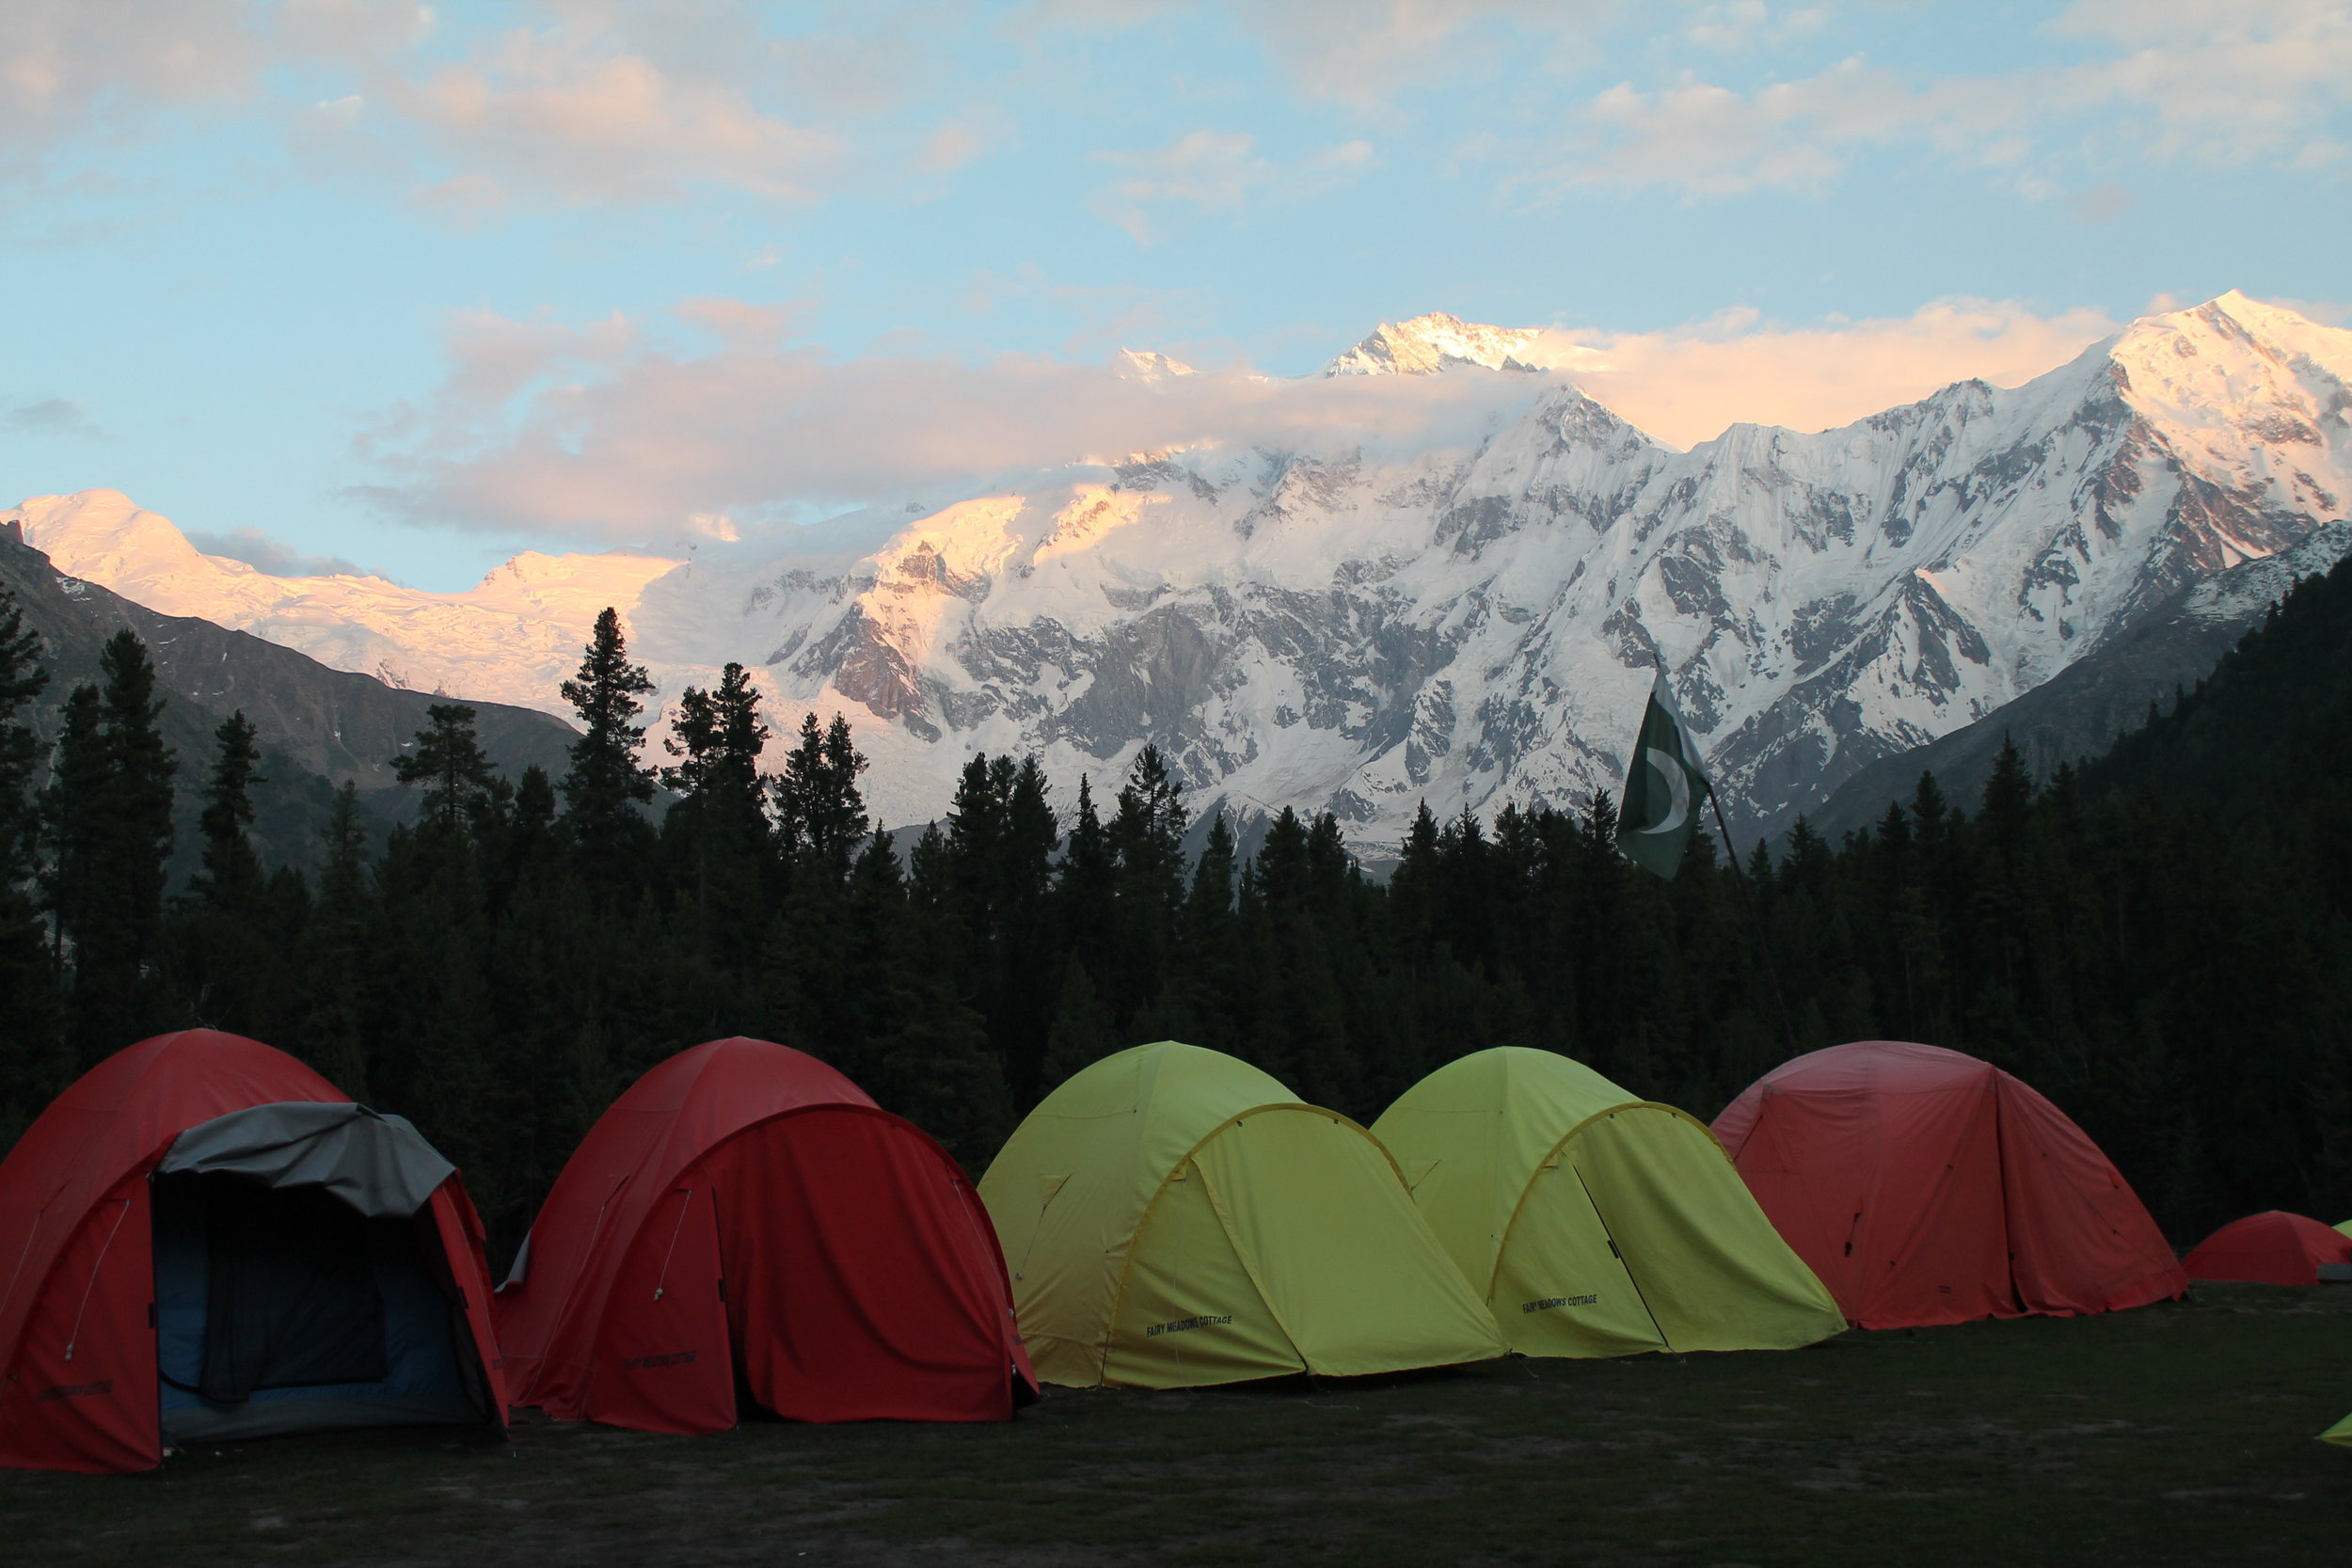 View of Nanga Parbat from our campsite at sunset in Fairy Meadows